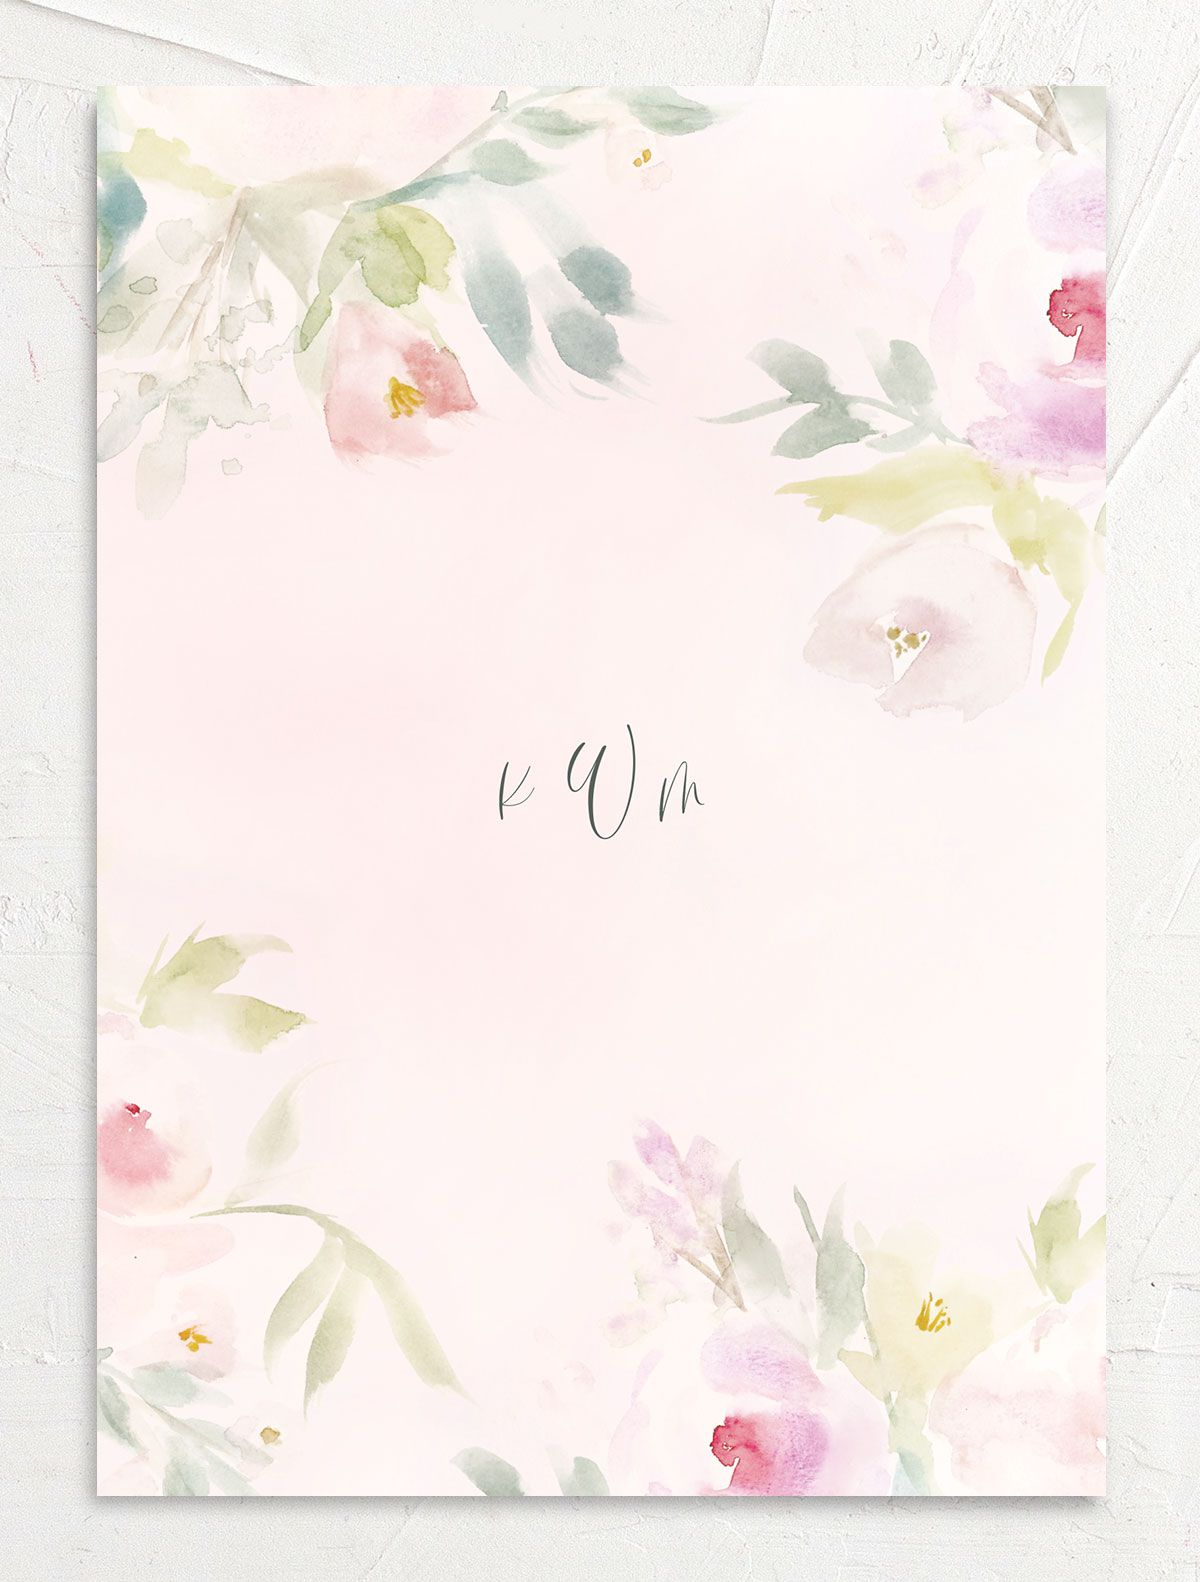 Romantic Watercolor Wedding Invitation Card back